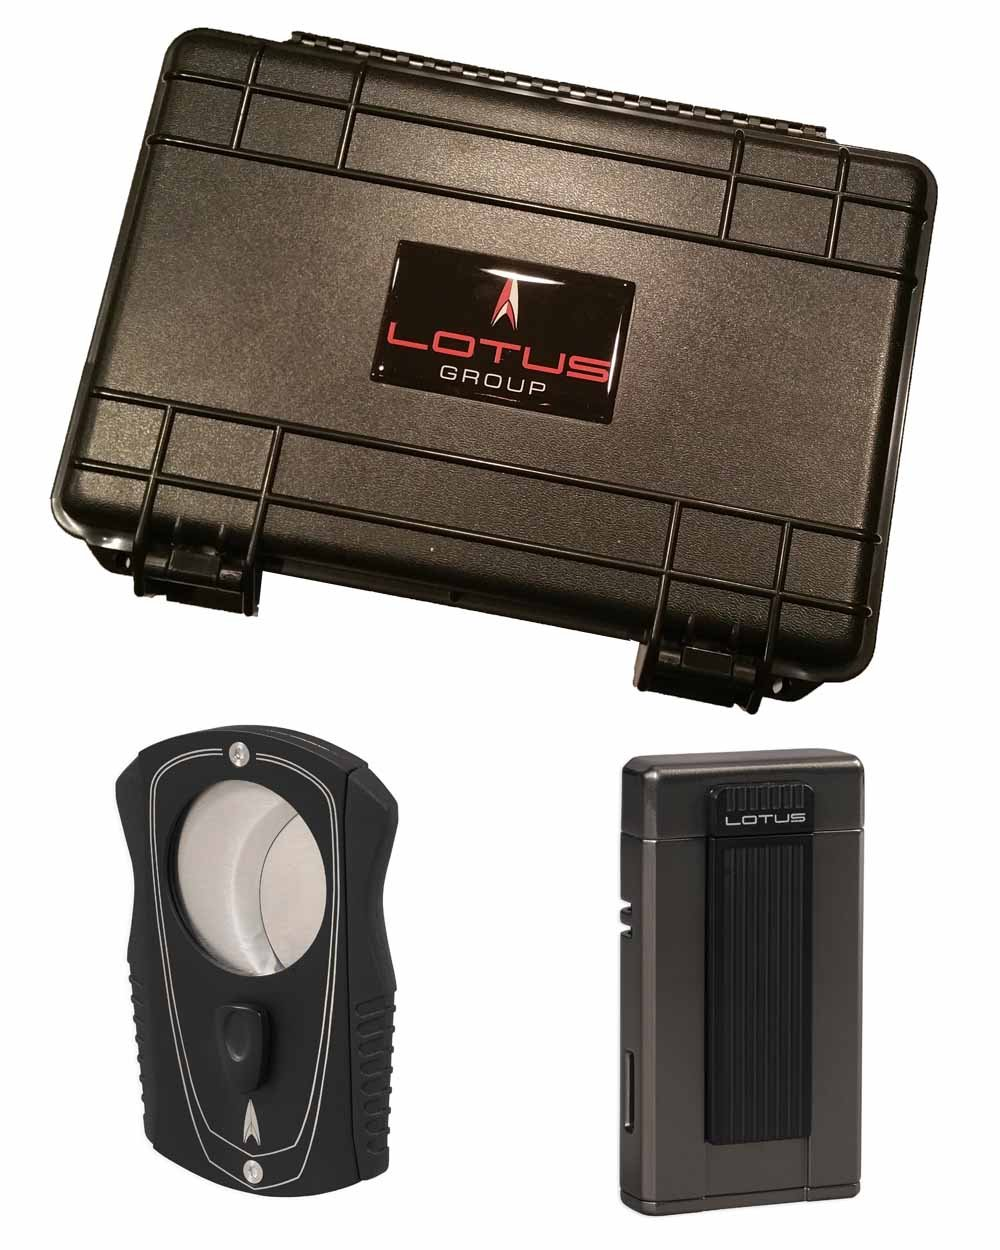 Ambassador Colussus 80 Ring Gauge Cutter Gift Set Gunmetal Lighter 5 Count Travel Humidor in an Attractive Gift Box Warranty